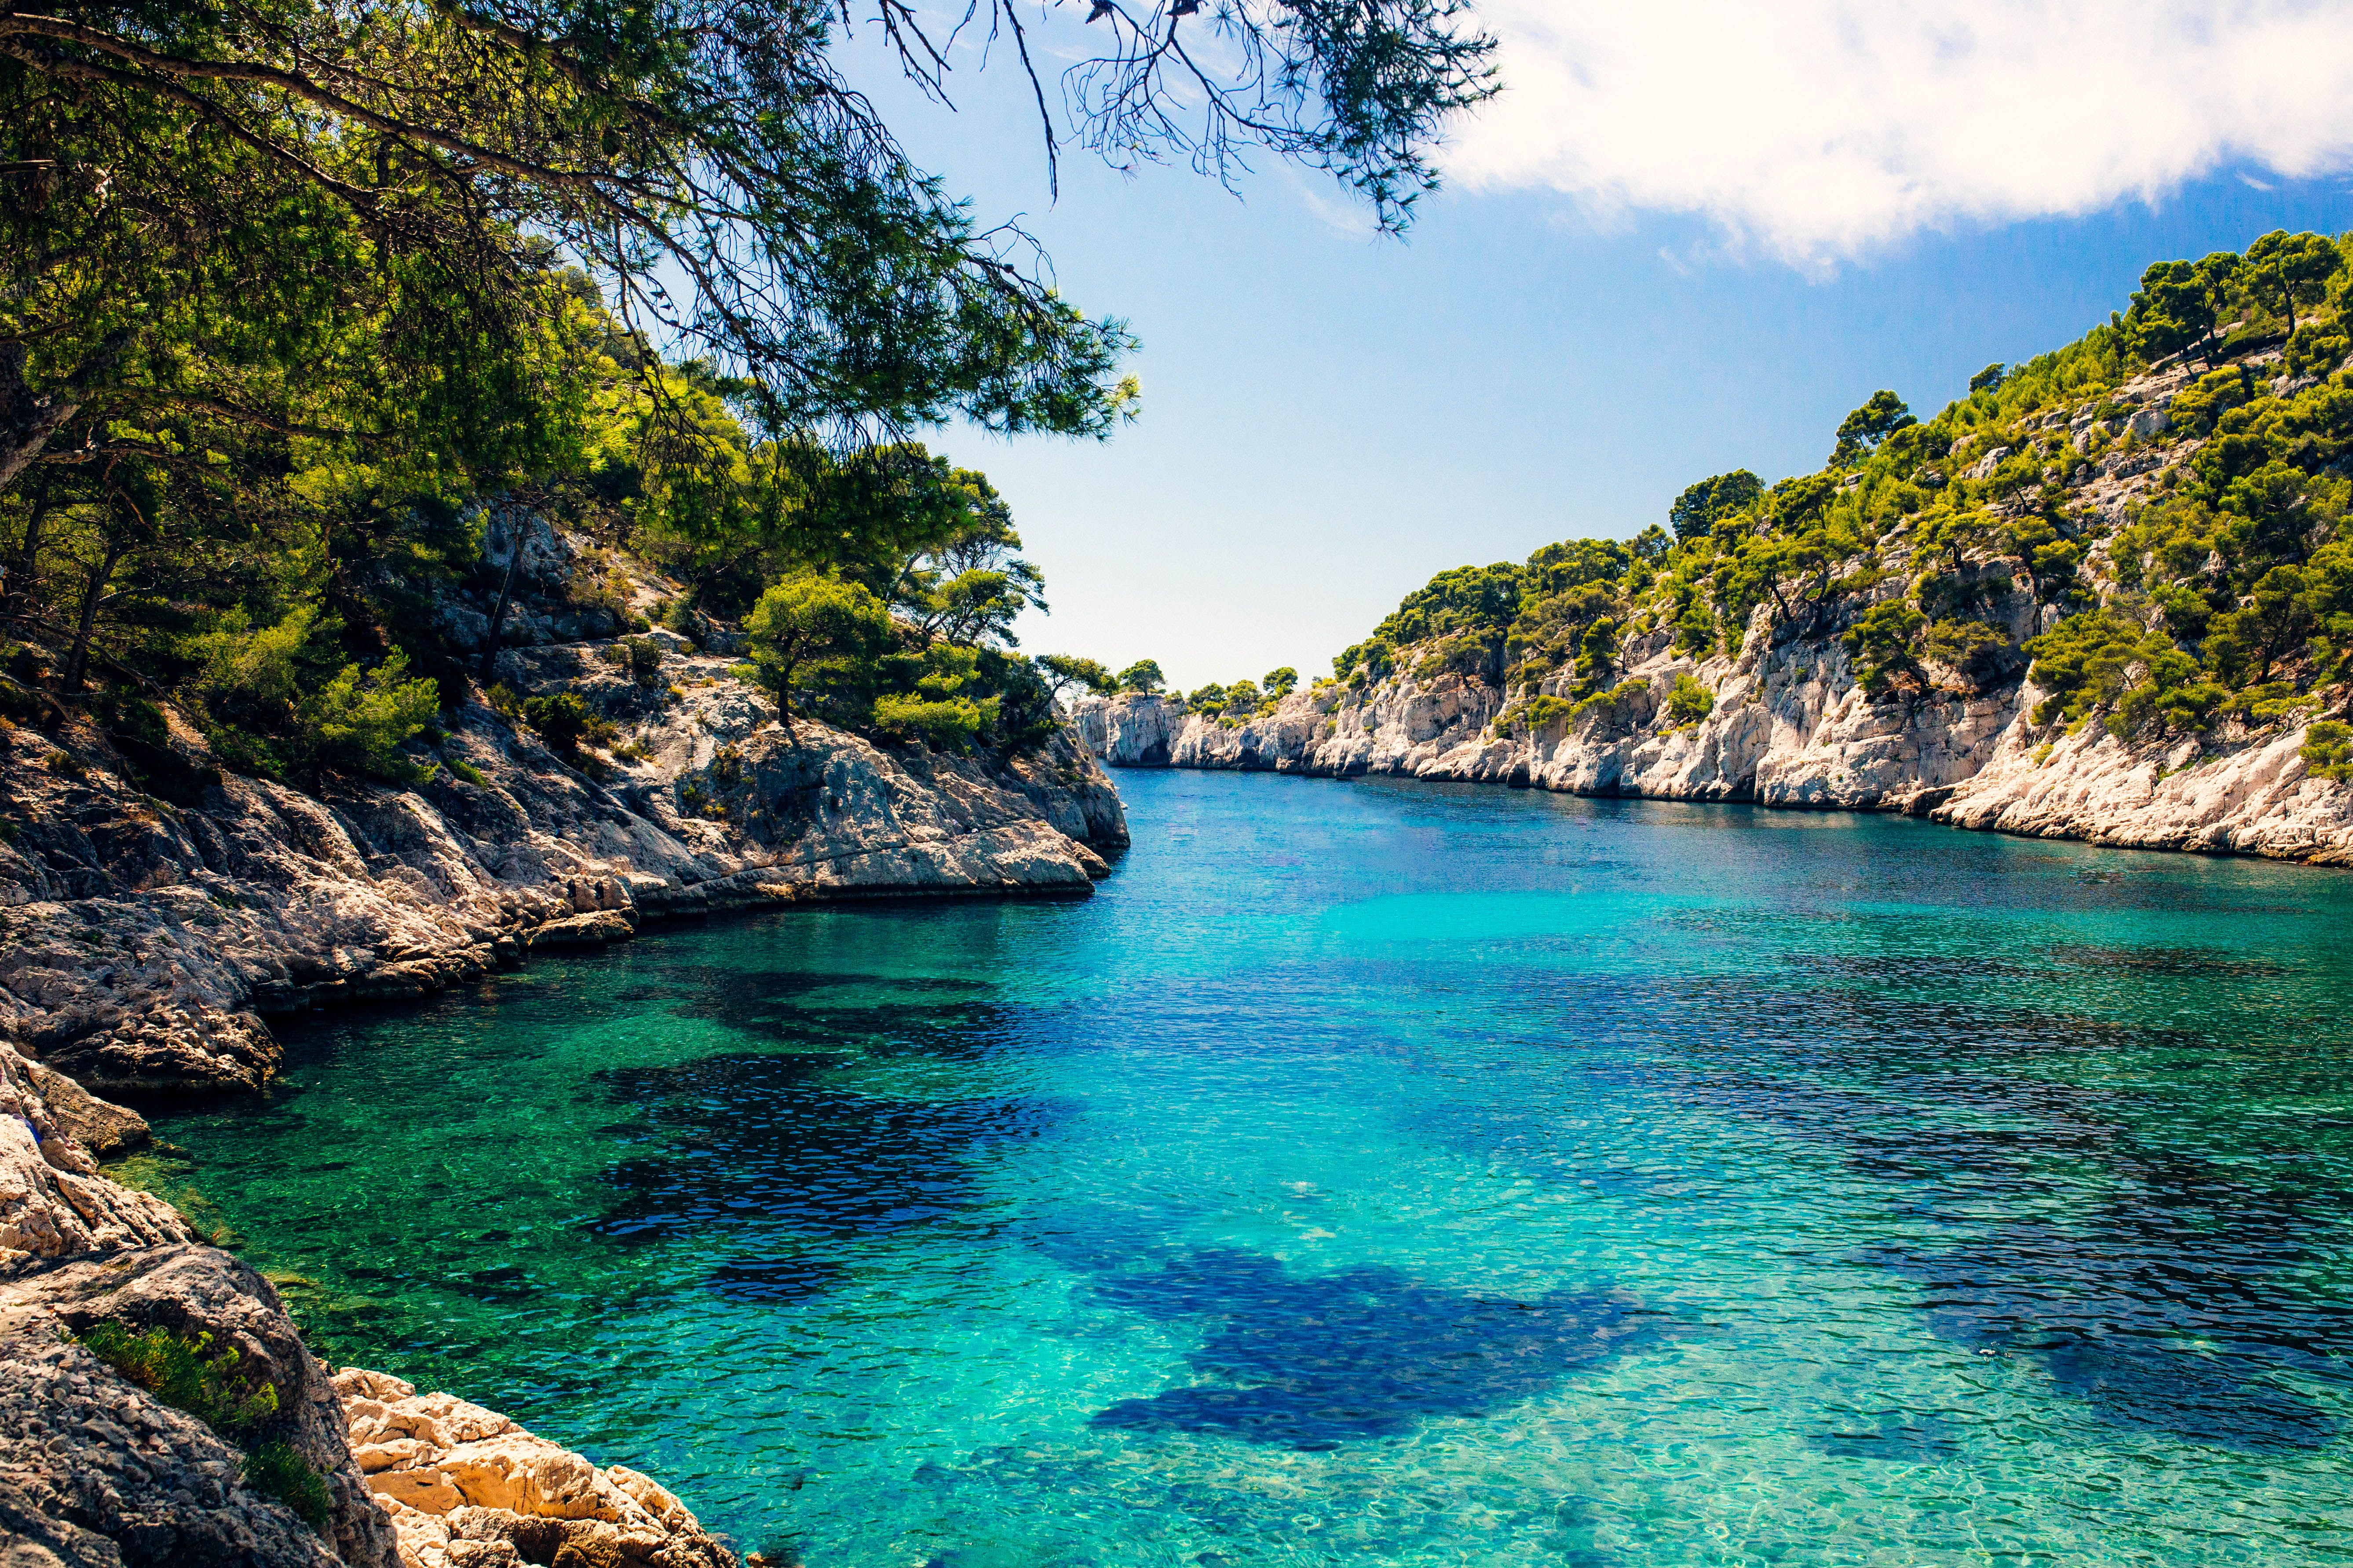 Good Vitamin Sea The Calanques Of Cassis, France, Where The Sea Has Formed  Narrow Inlets Among The Steep Cliffs.